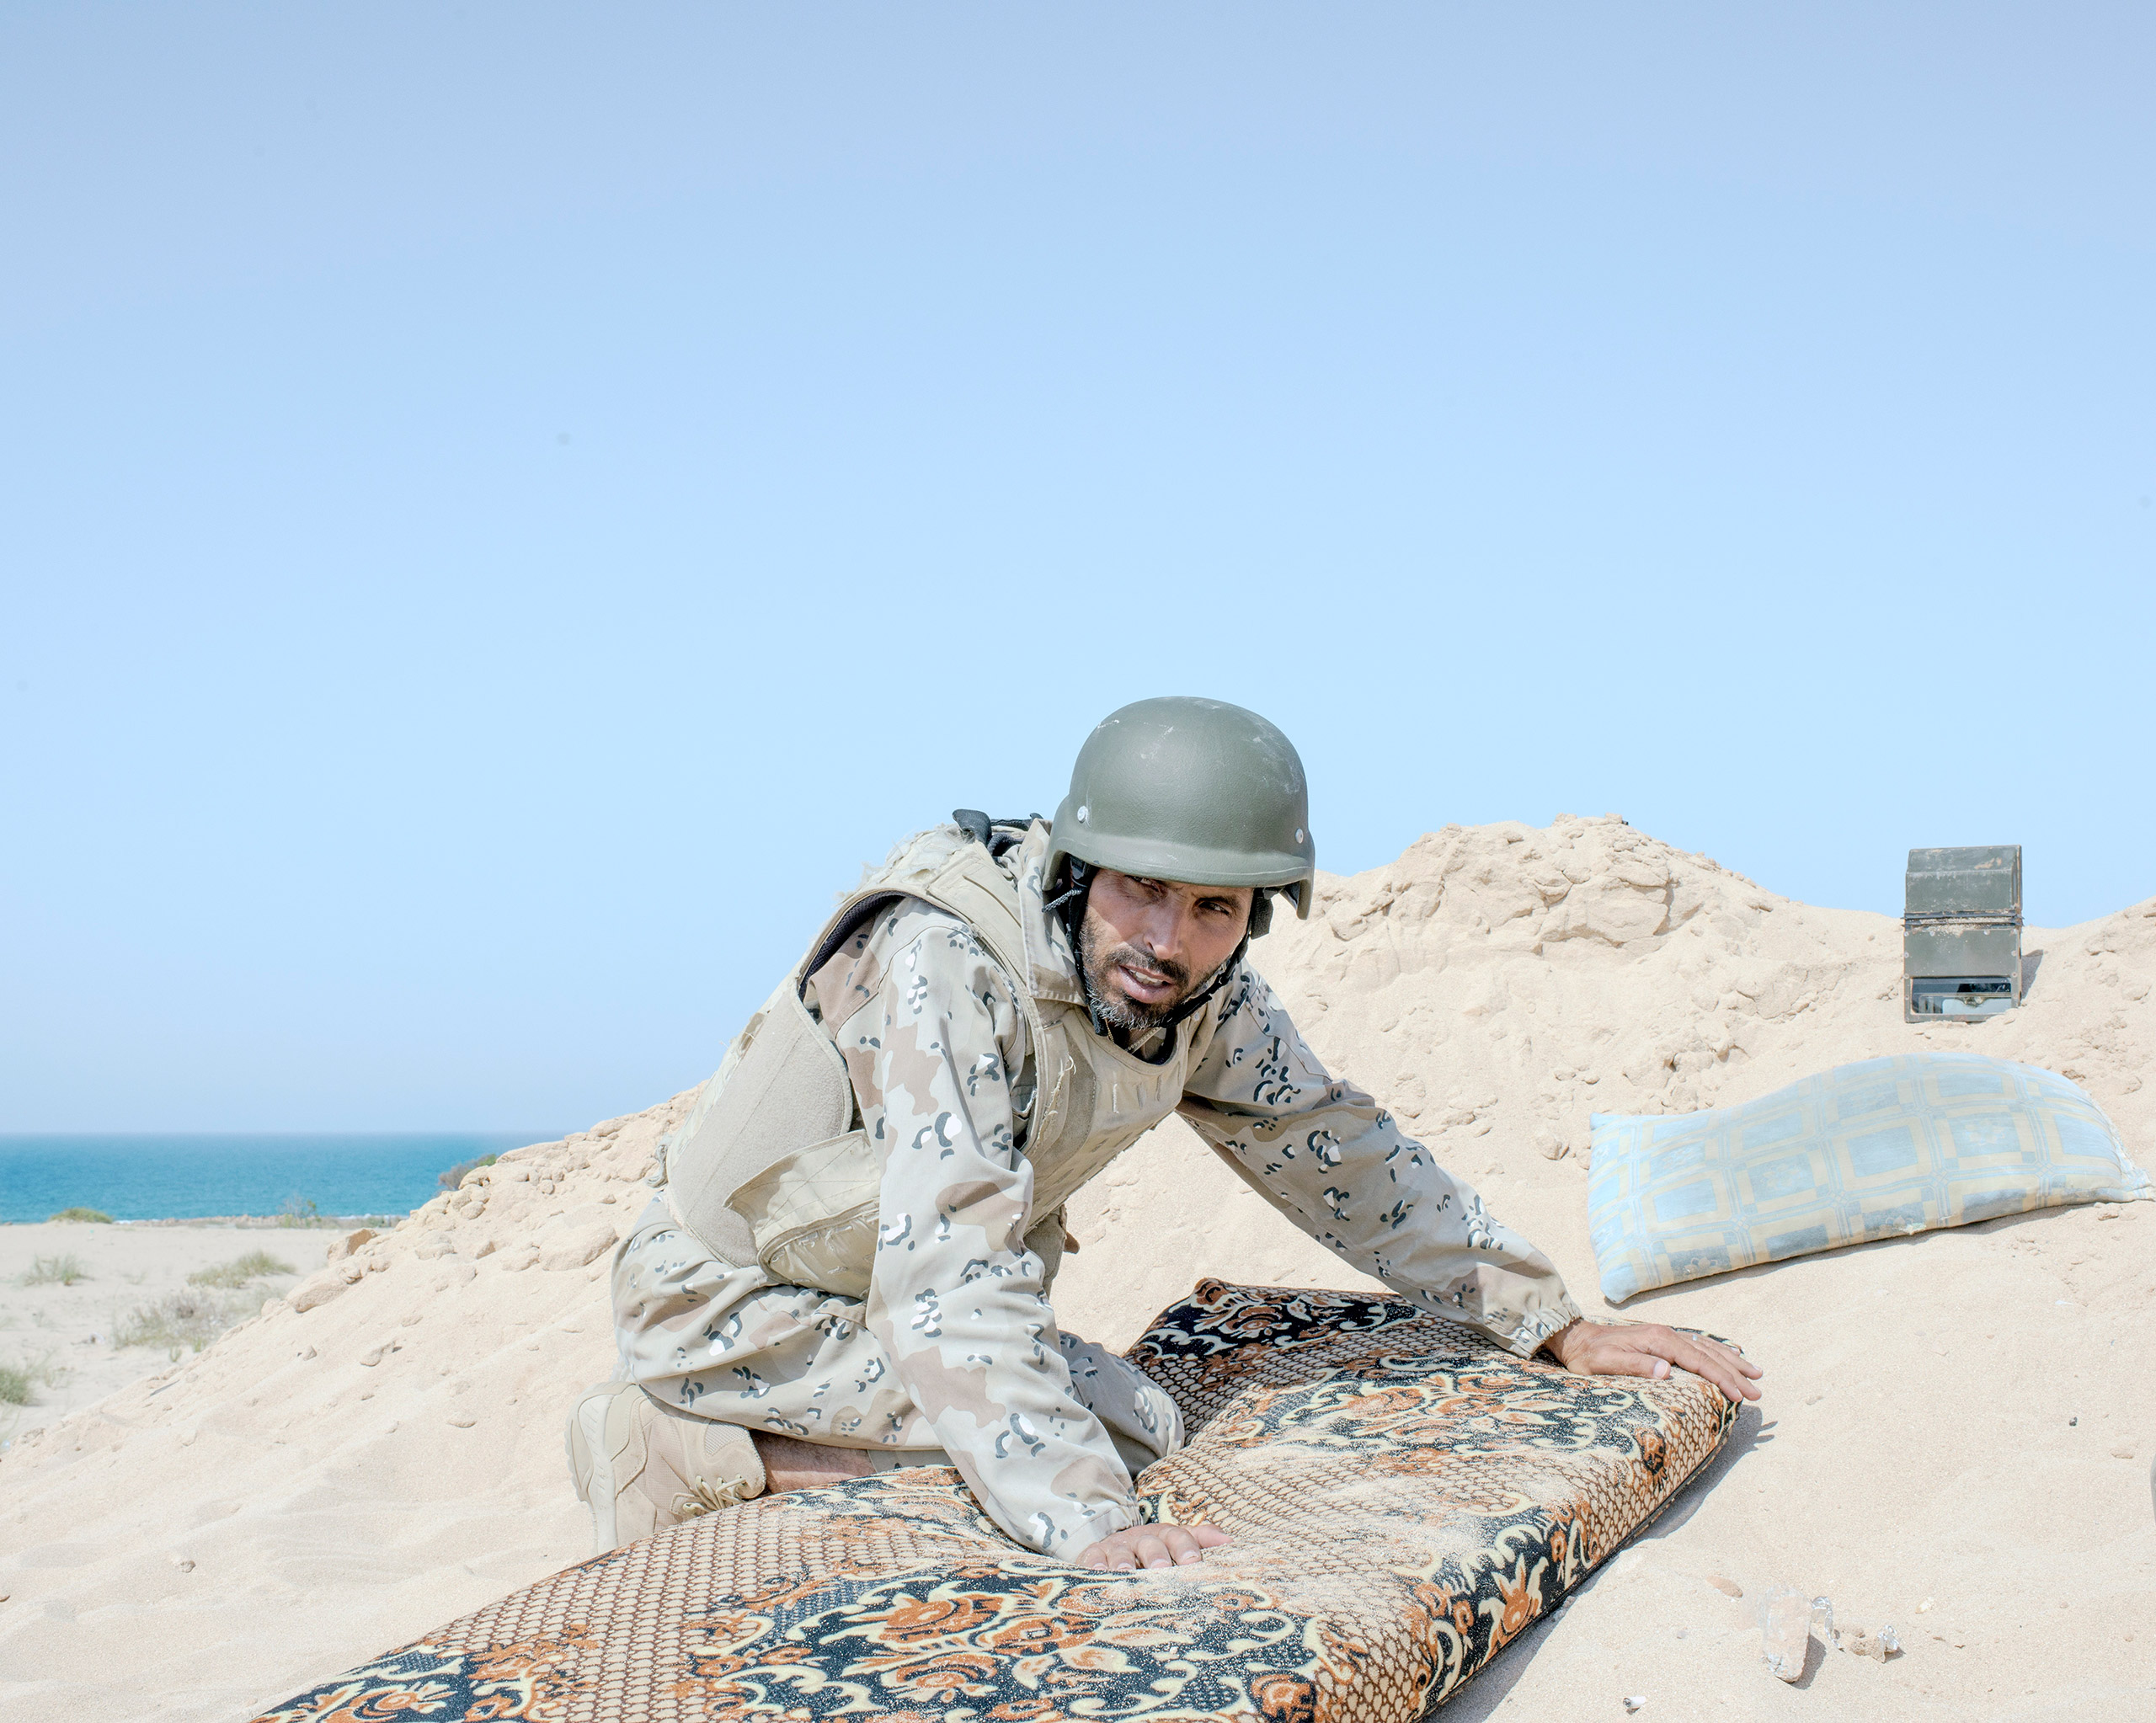 A Libyan spotter identifies ISIS positions on the westernmost frontline against ISIS on the Sirt seafront, July 2016.From  Inside ISIS' Last Bastion in Libya